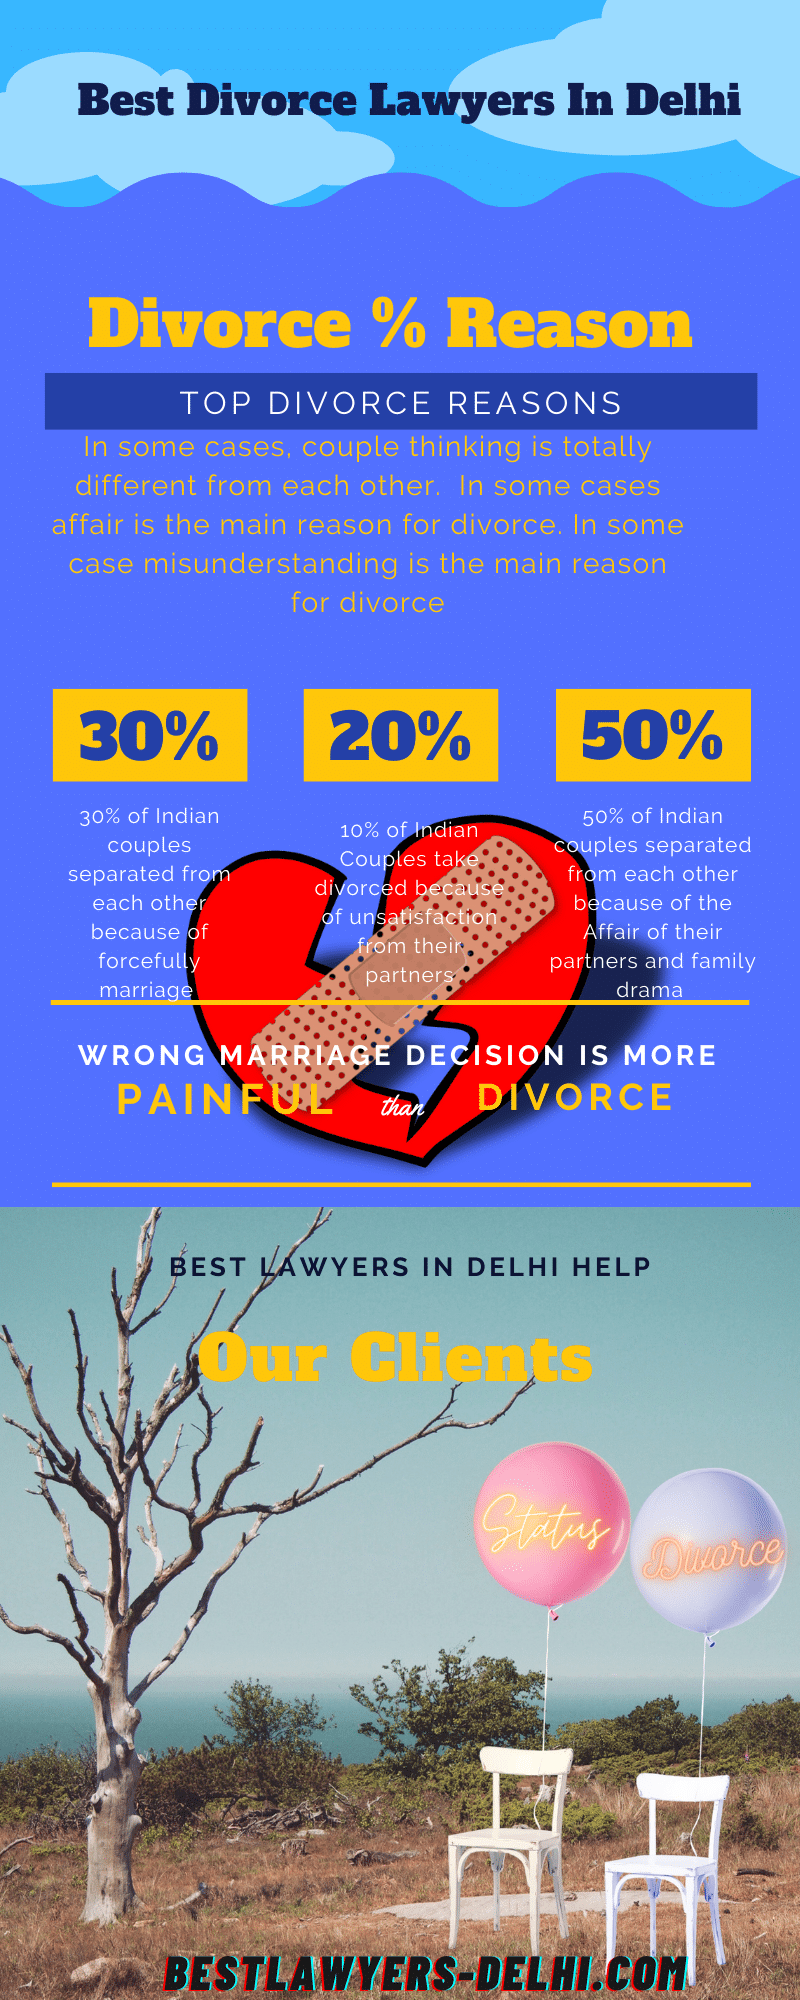 Top 5 Reasons of Divorce in India